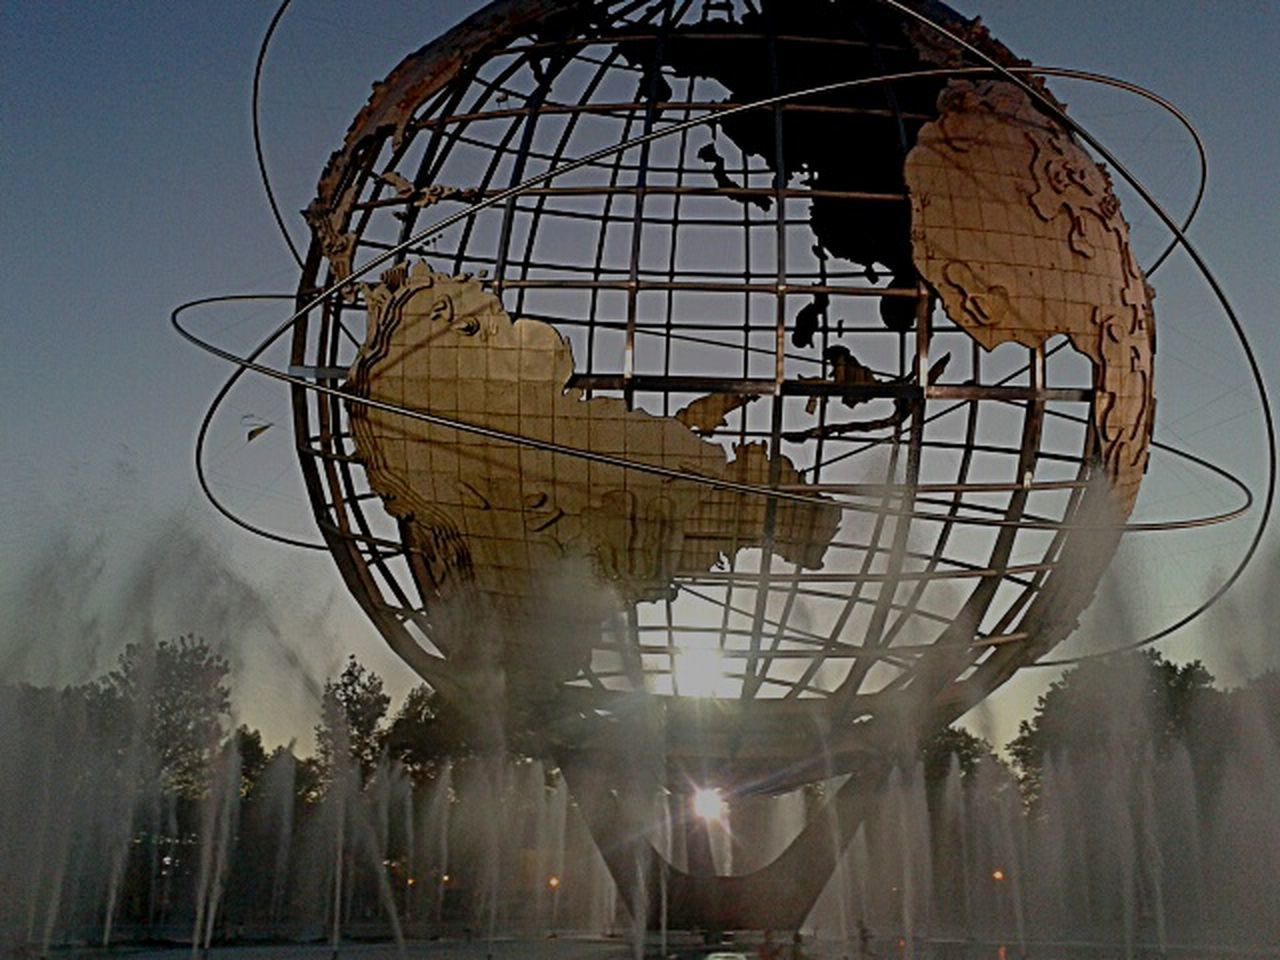 The Magic Mission UniSphere,twilight.photo by Shell Sheddy Lieblingsteil Shellsheddyphotography Nyc Photo Unisphere Unisphoto World Flushing Meadows Corona Park Fountain Battle Of The Cities